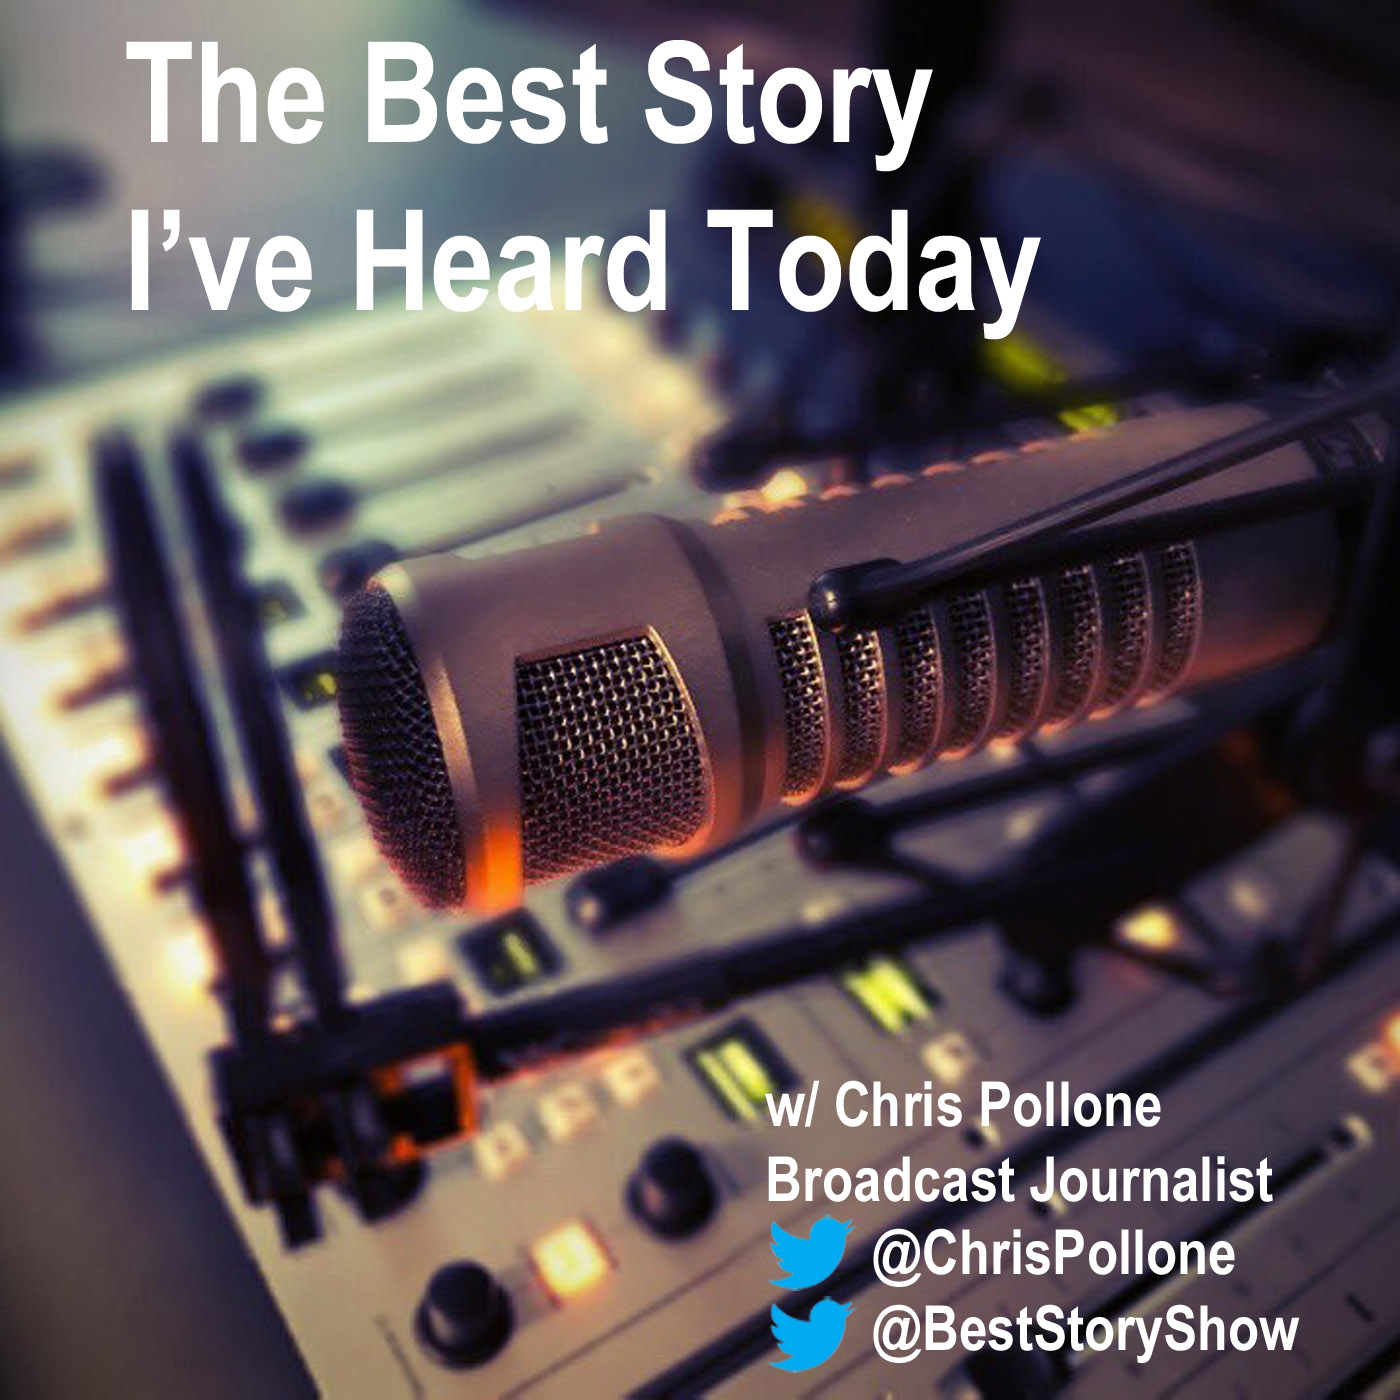 The Best Story I've Heard Today with NBC news correspondent Chris Pollone